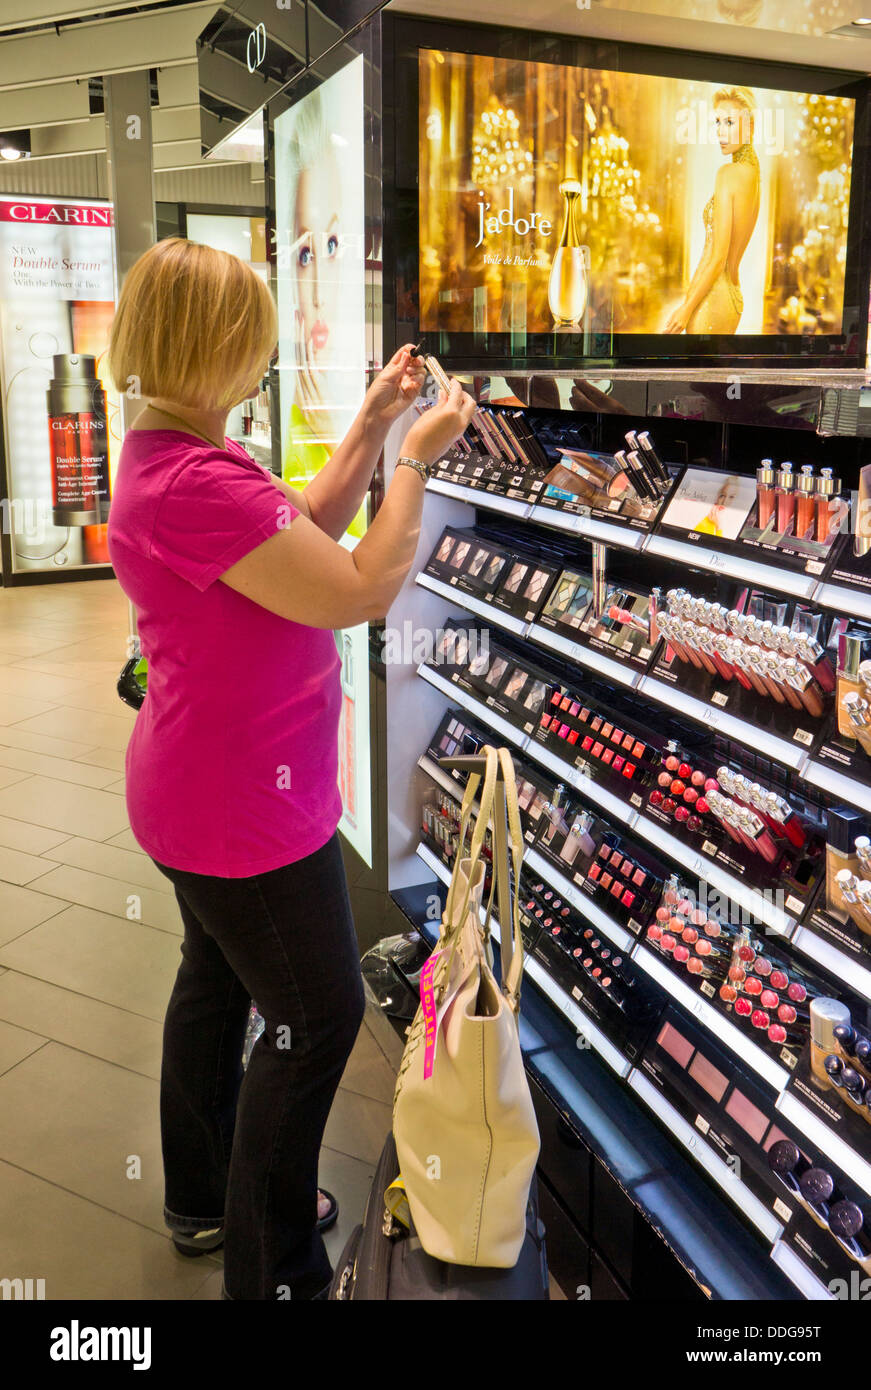 woman traveller shopping for duty free free cosmetics make up beauty products perfume in an airport duty free shop - Stock Image